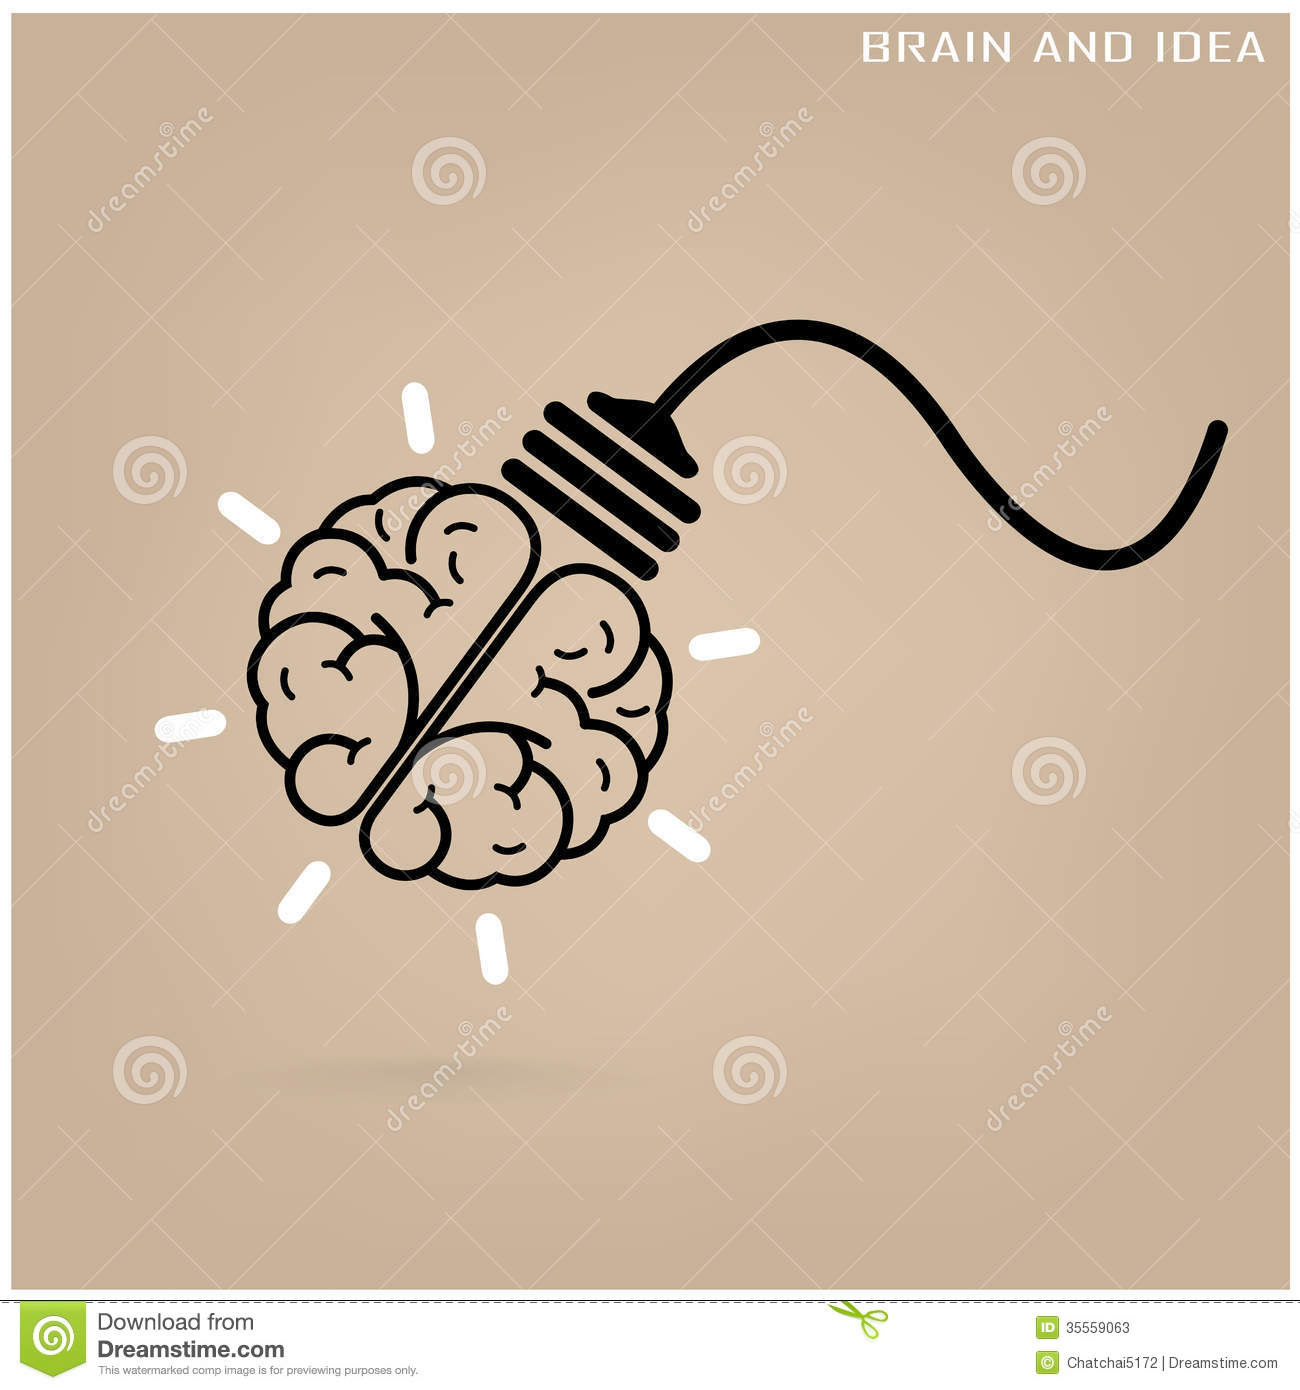 Creative Brain Idea Concept Background Stock Photos ...